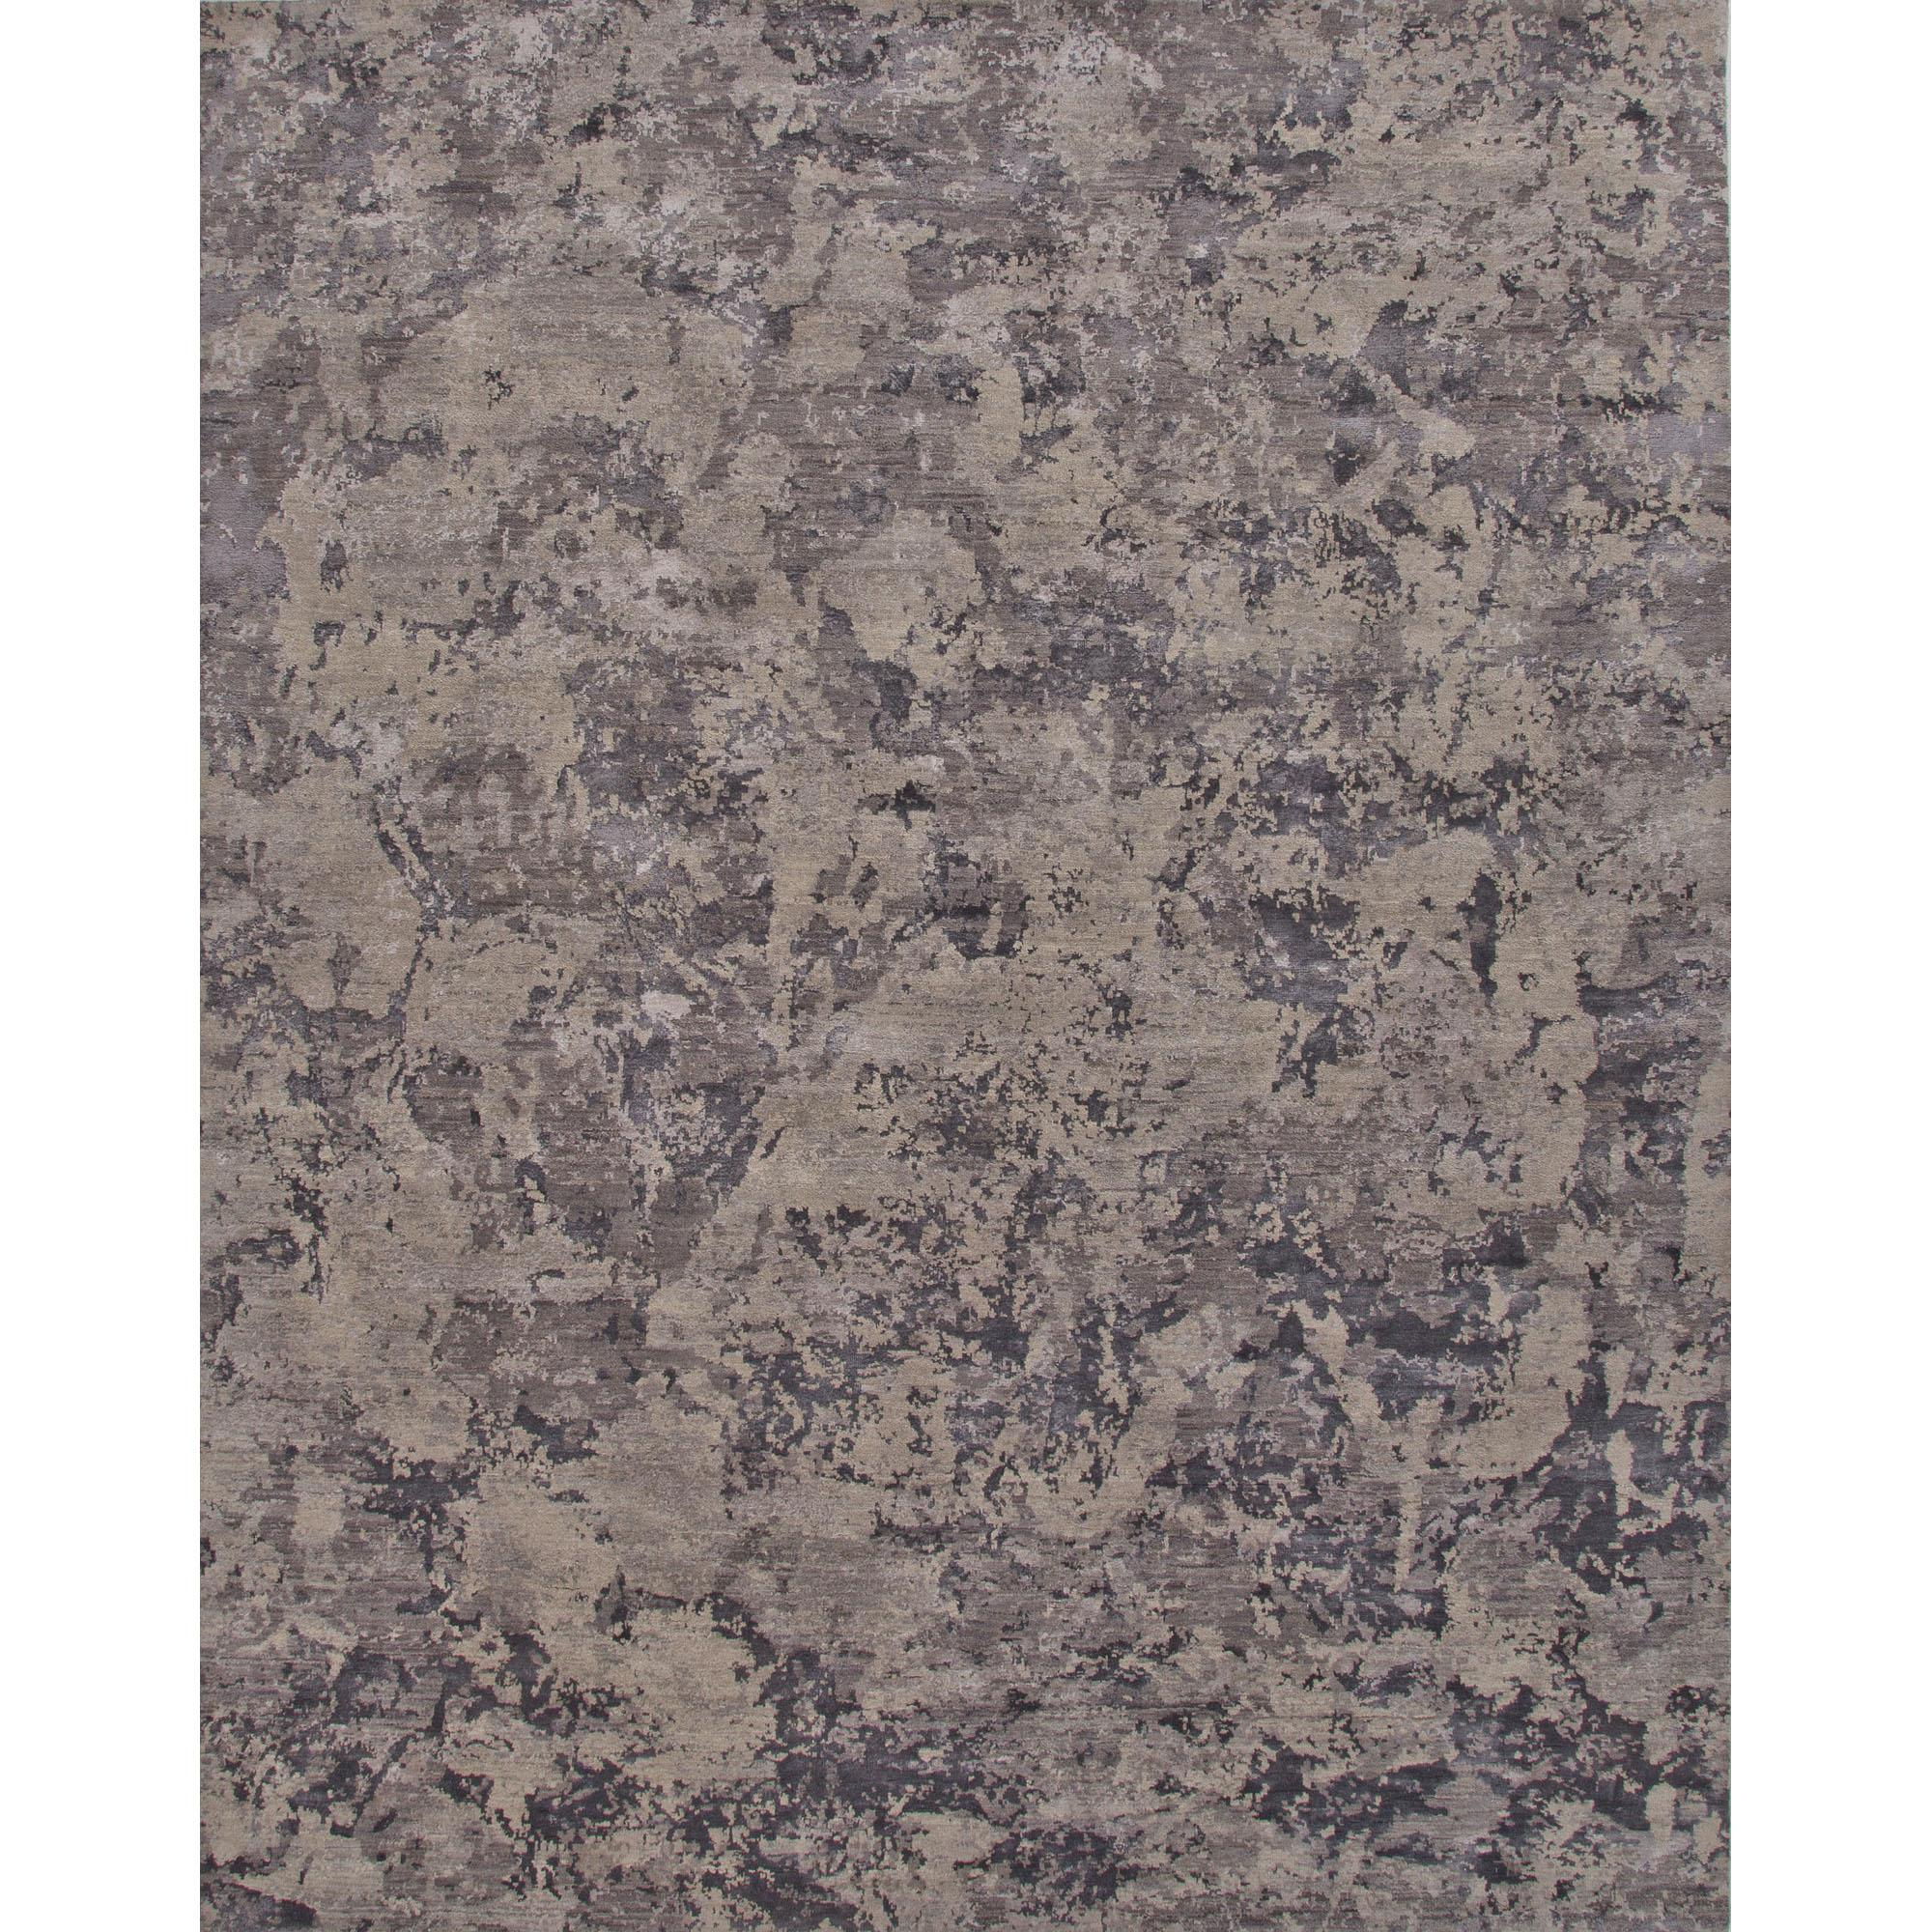 JAIPUR Rugs Chaos Theory By Kavi 5.6 x 8 Rug - Item Number: RUG119226